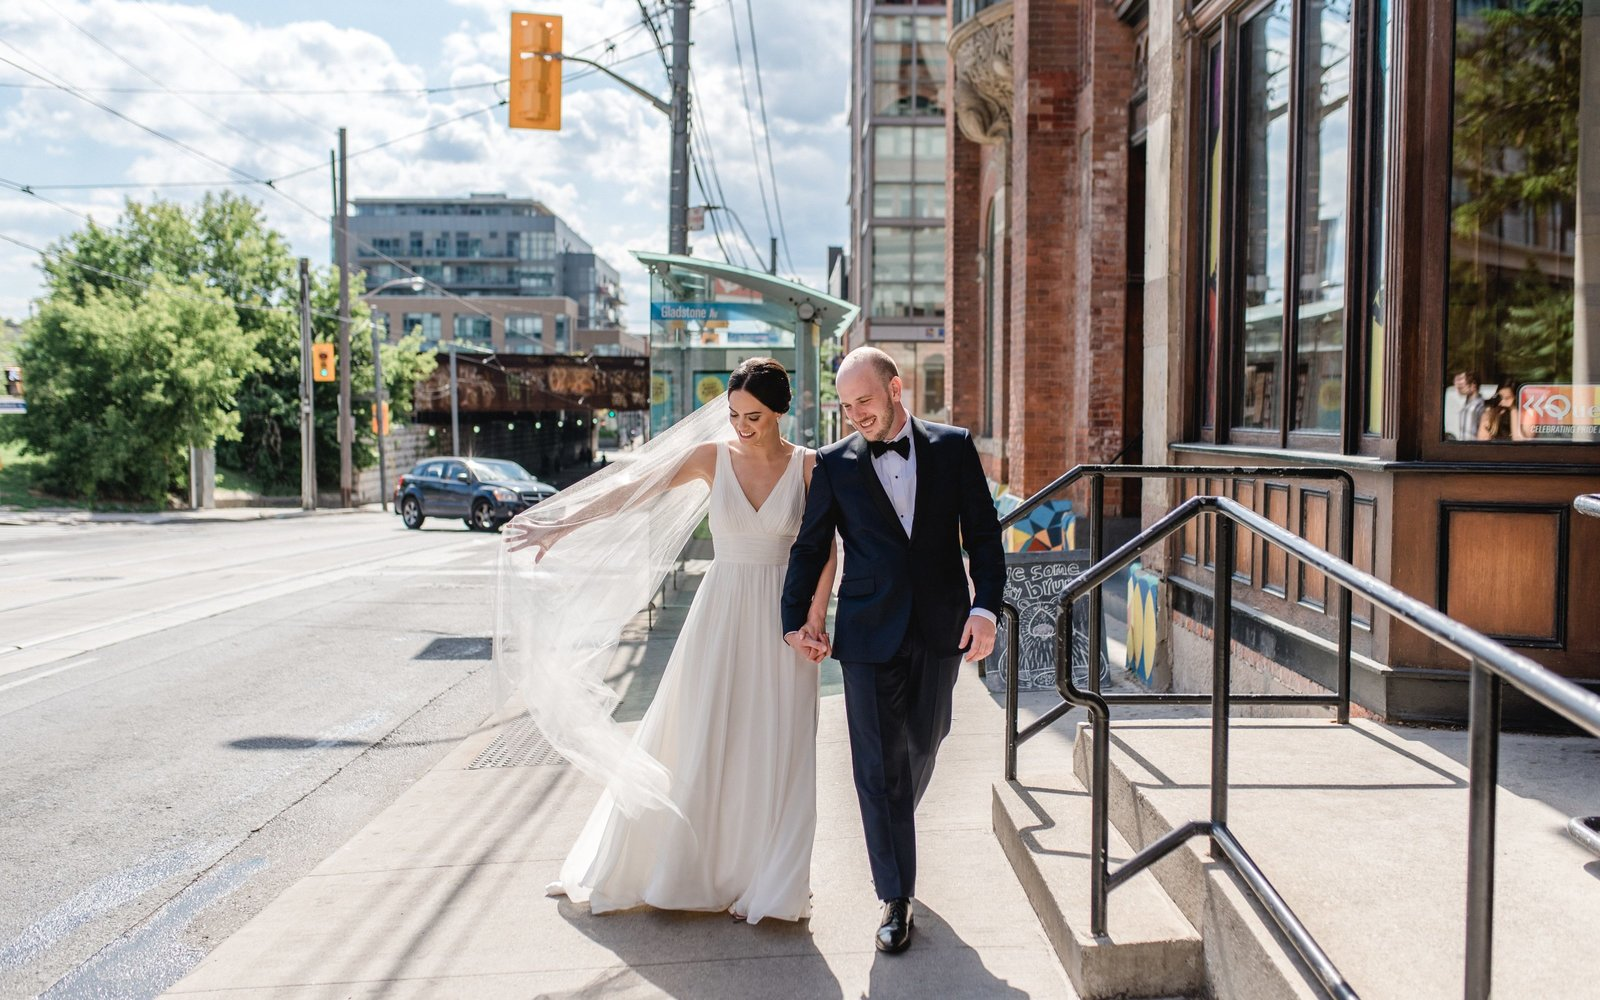 Bride Groom Portraits Fun Gladstone Hotel Toronto Ontario Wedding Photography  Queen Street | Jacqueline James Photography